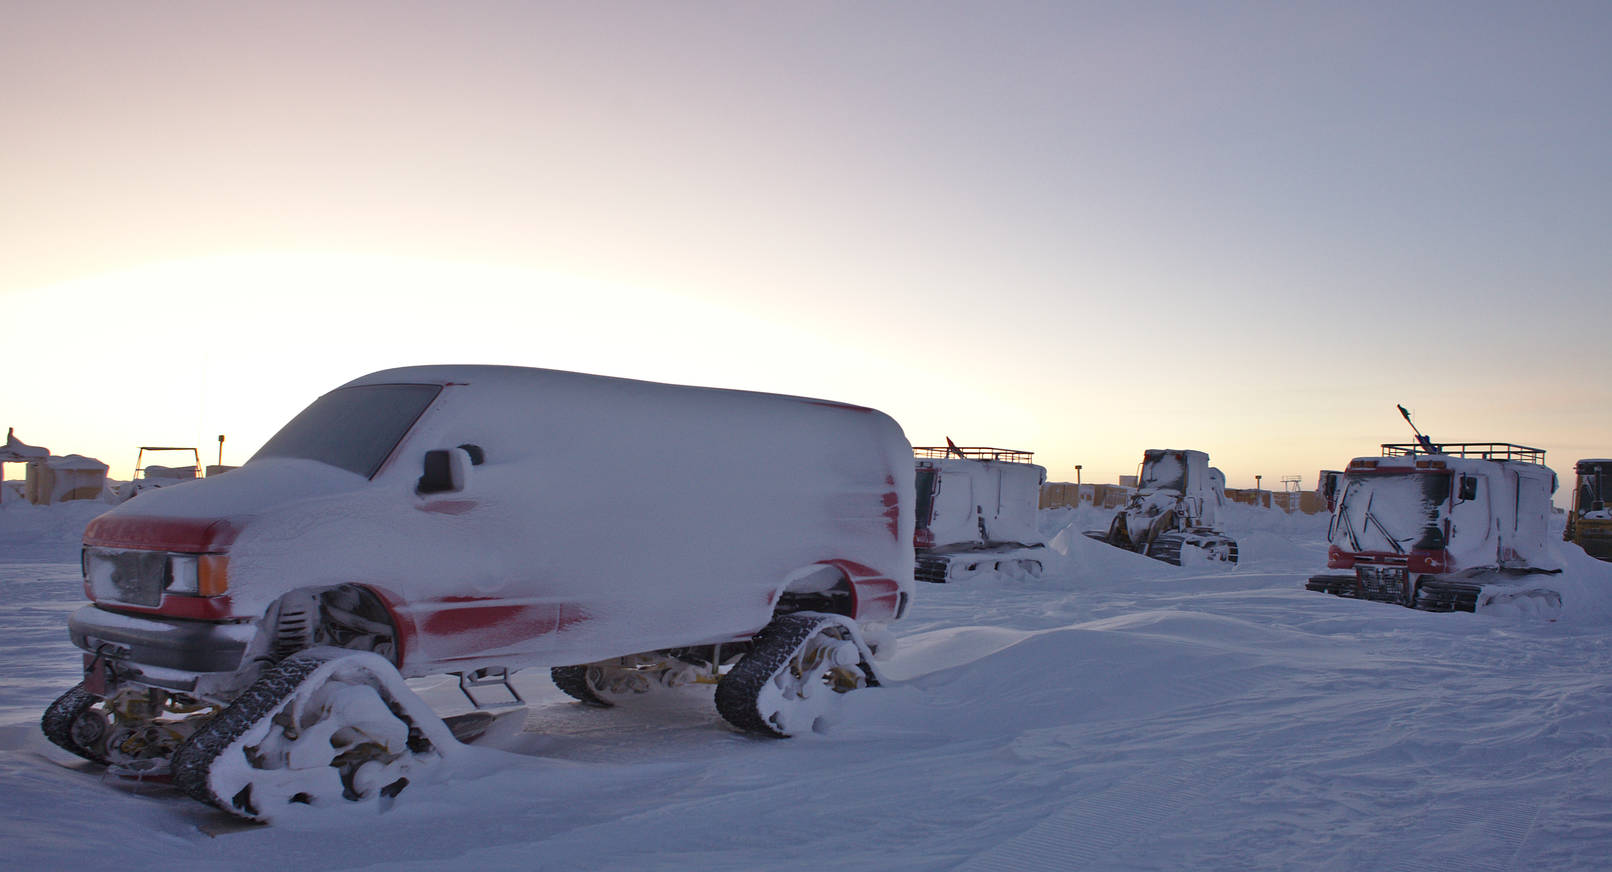 The frozen race. These vehicles were parked outside all winter and will be soon made ready for the summer.